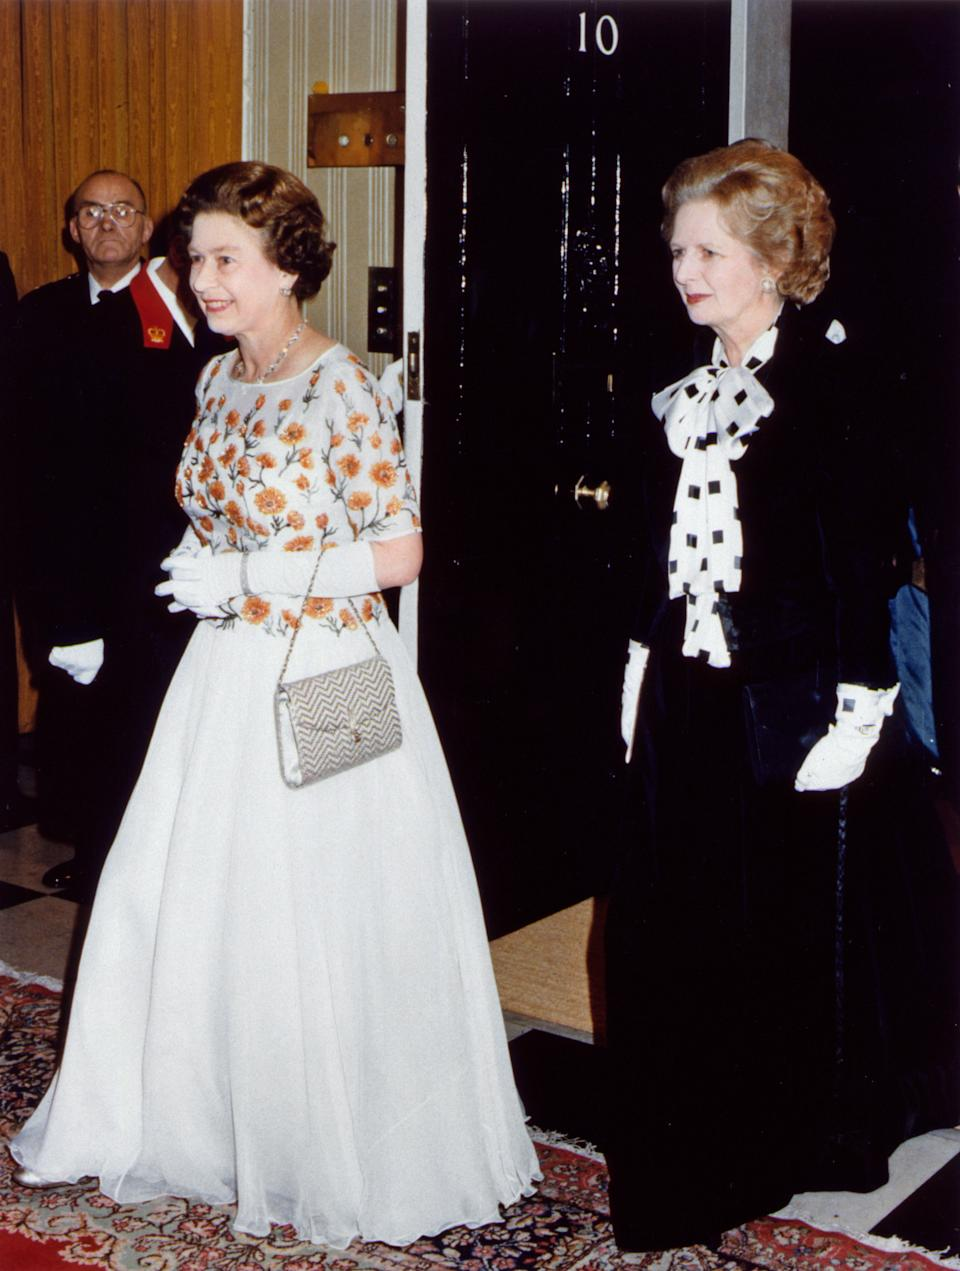 Her Majesty Queen Elizabeth II and Prime Minister Margaret Thatcher at Number 10 Downing Street wearing ball gowns December 1985. (Photo by Daily Mirror /Mirrorpix/Getty Images)